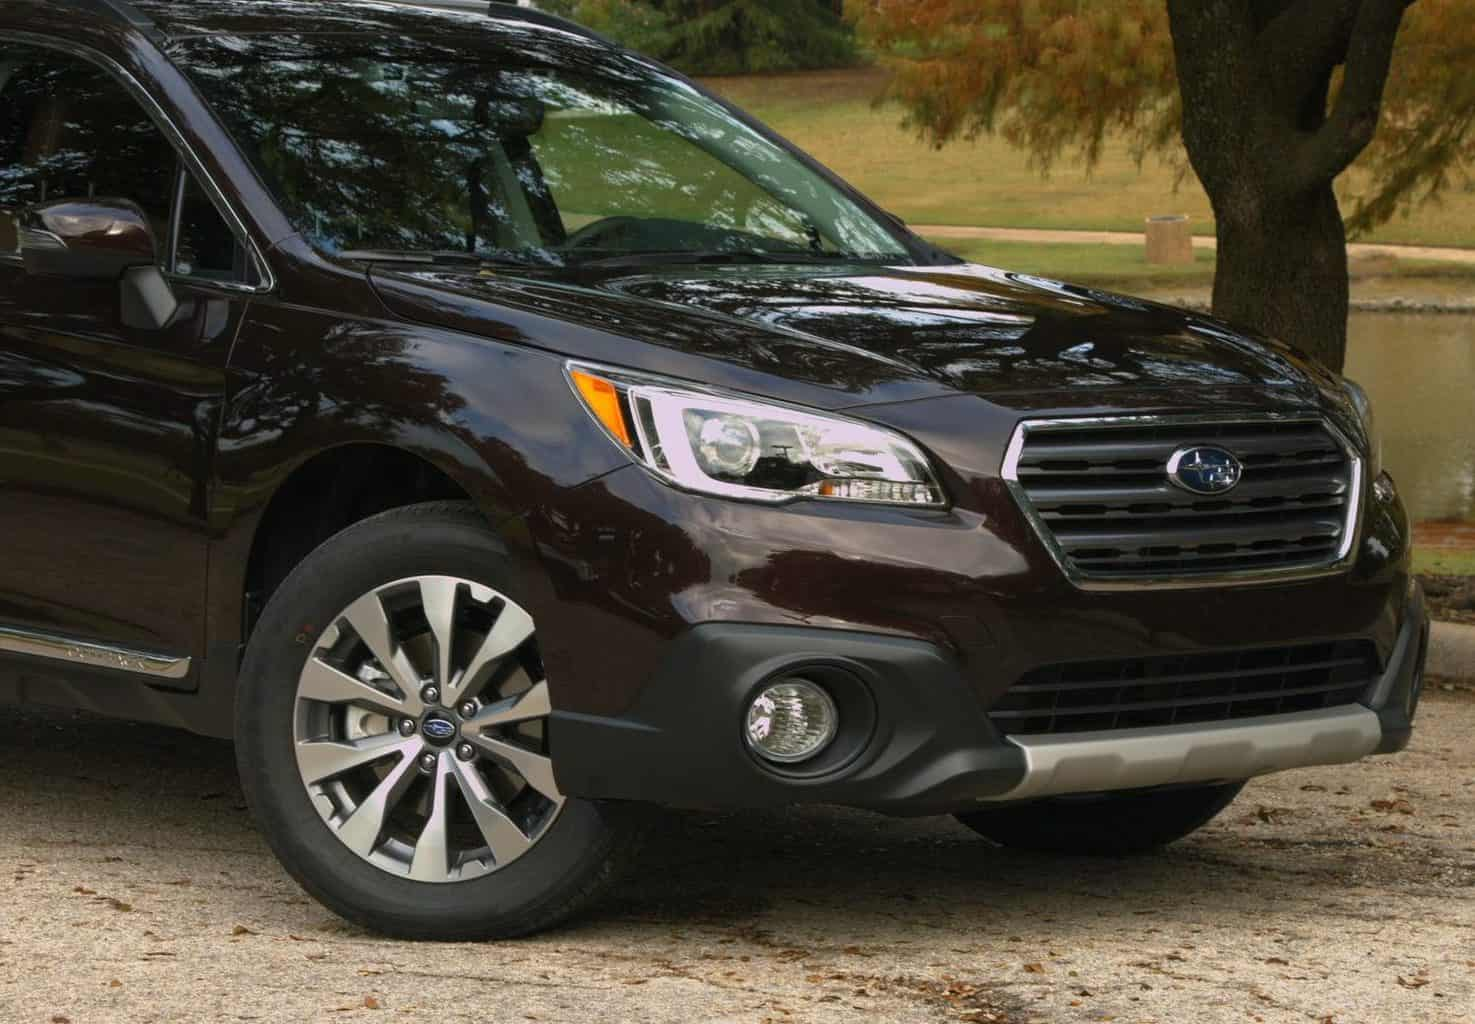 2017 Subaru Outback Touring Test Drive and Review Photo Gallery